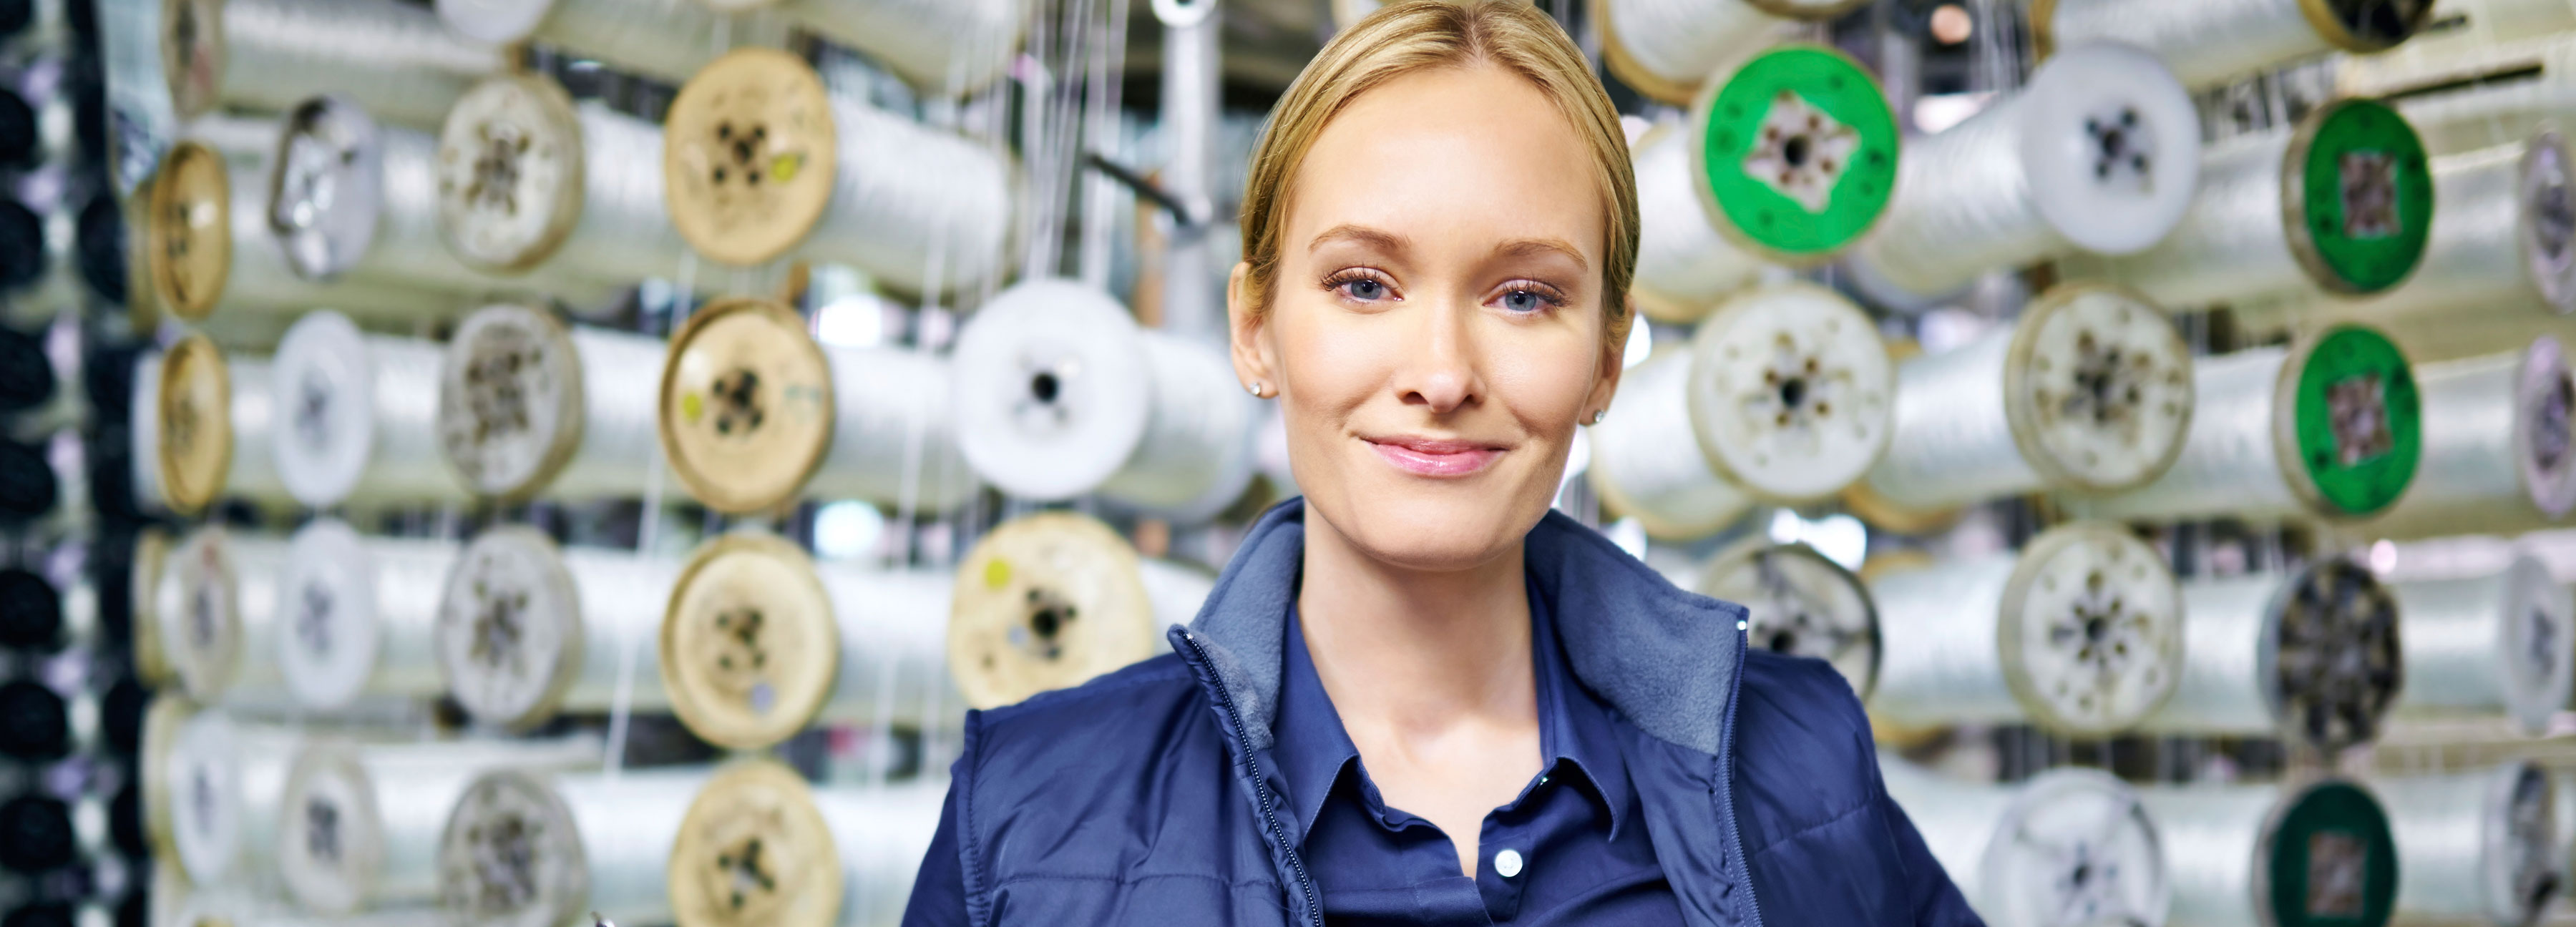 Woman standing in front of manufacturing equipment